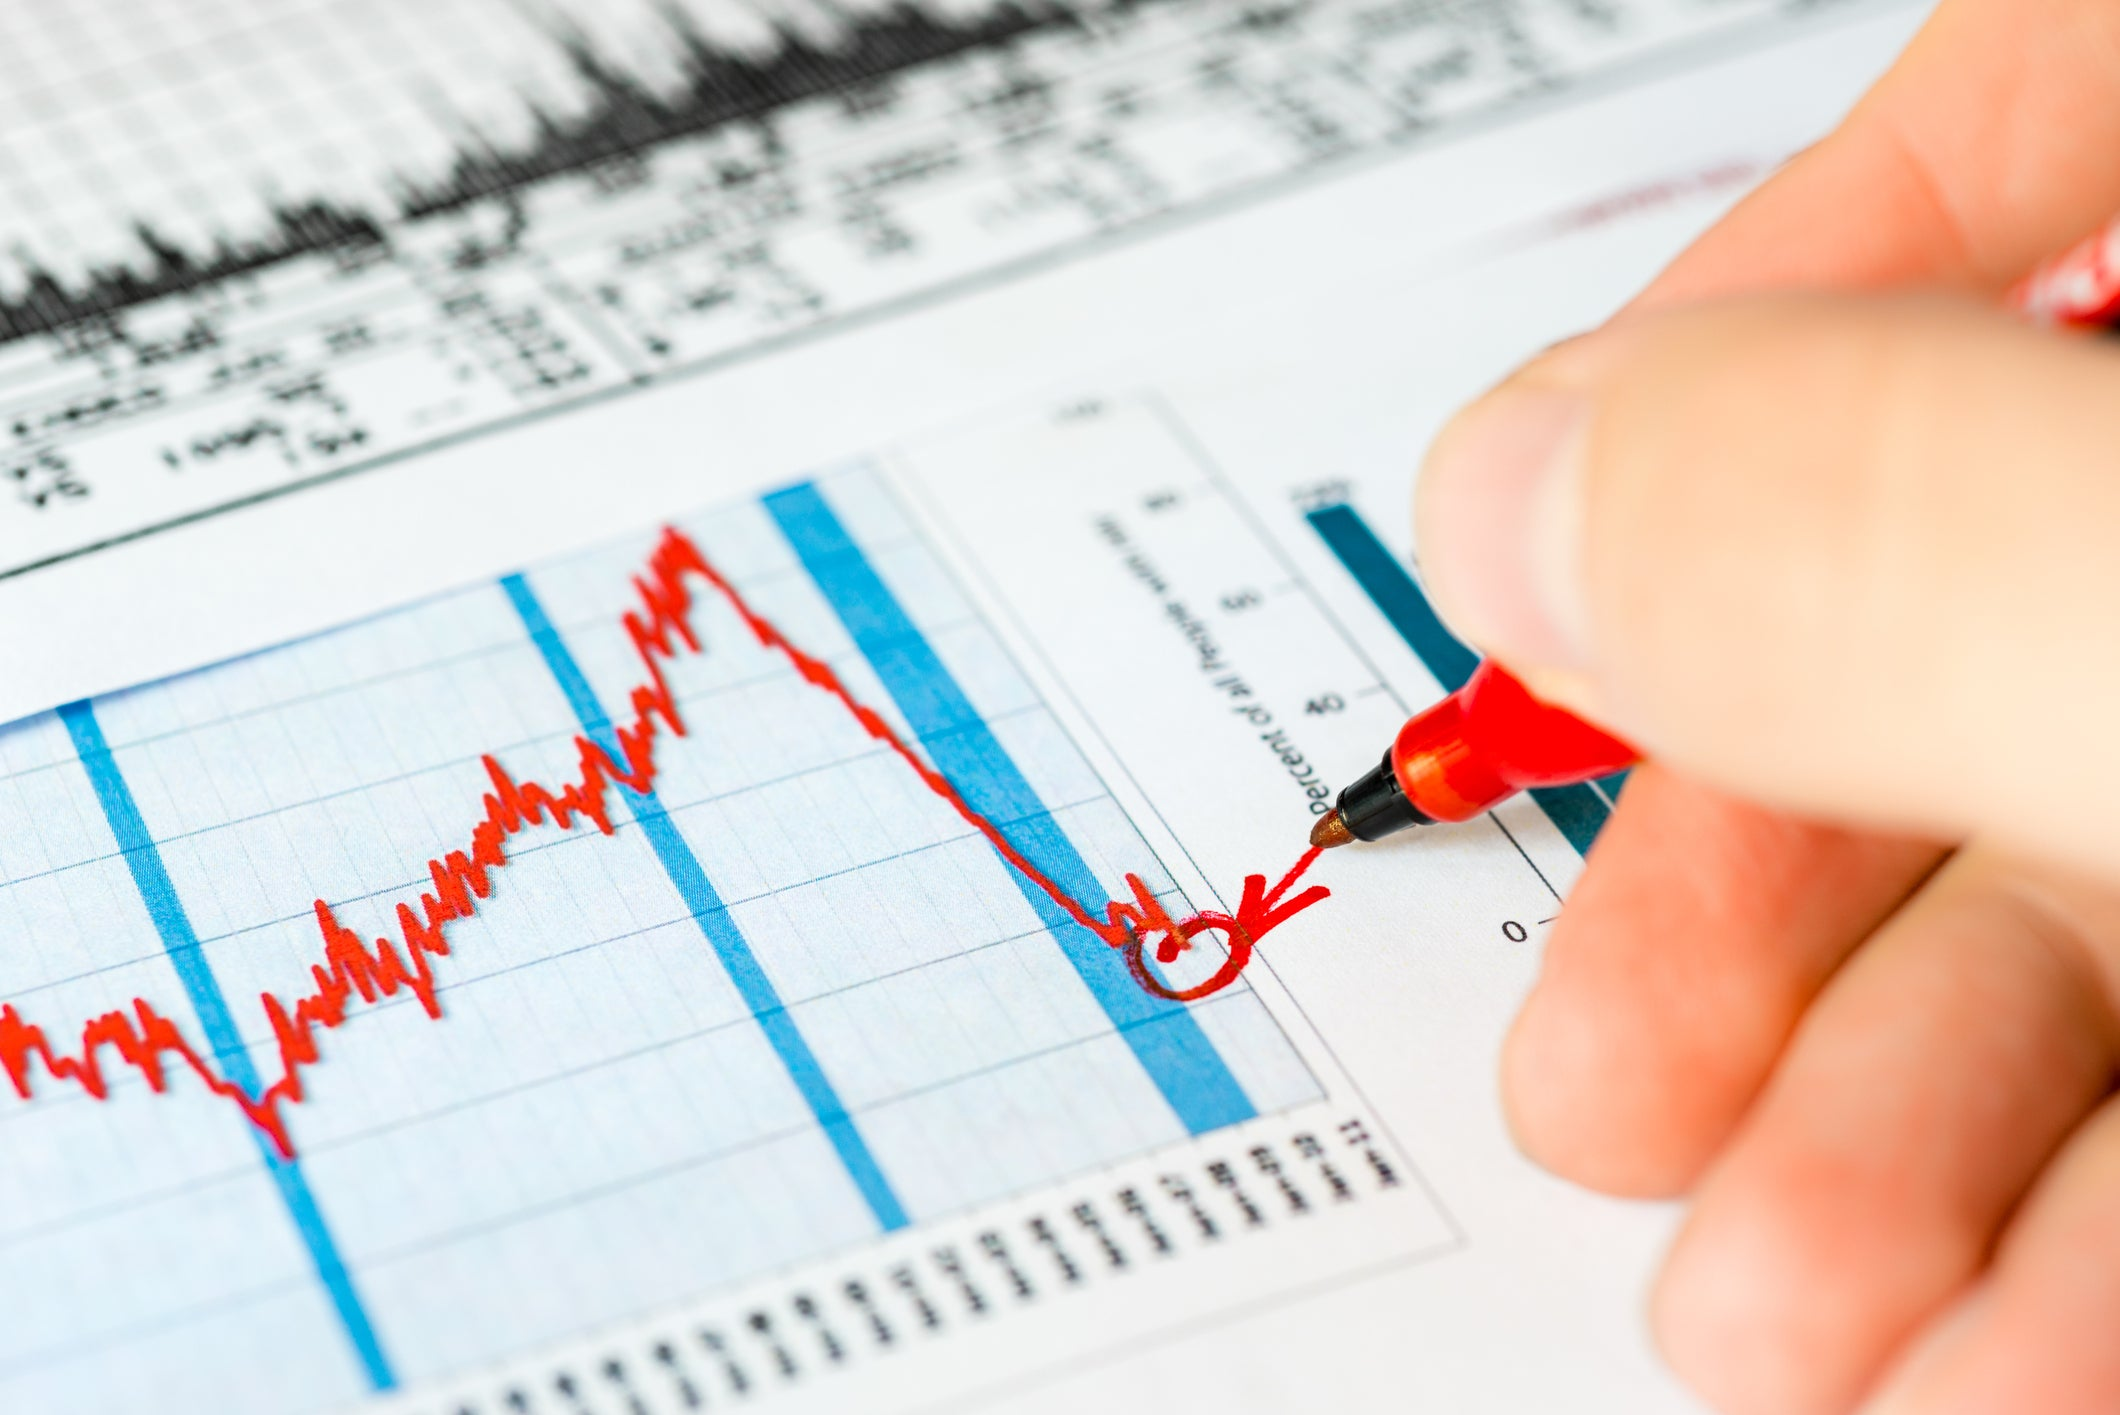 A Stock Market Crash May Be Close: 4 Must-Know Metrics That'll Make You a Smarter Investor